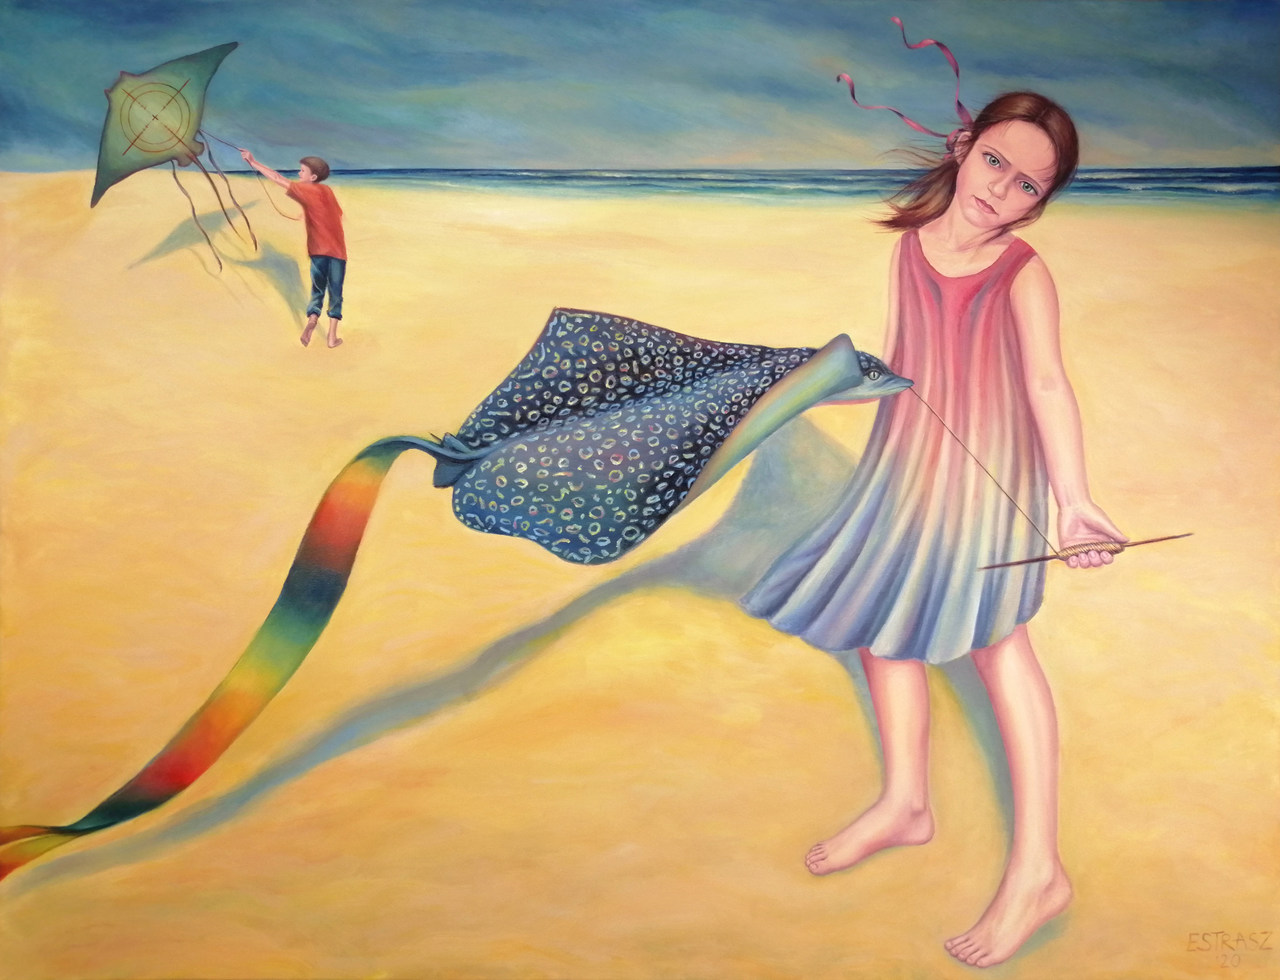 A Perfect Weather to Fly Kites, 2020